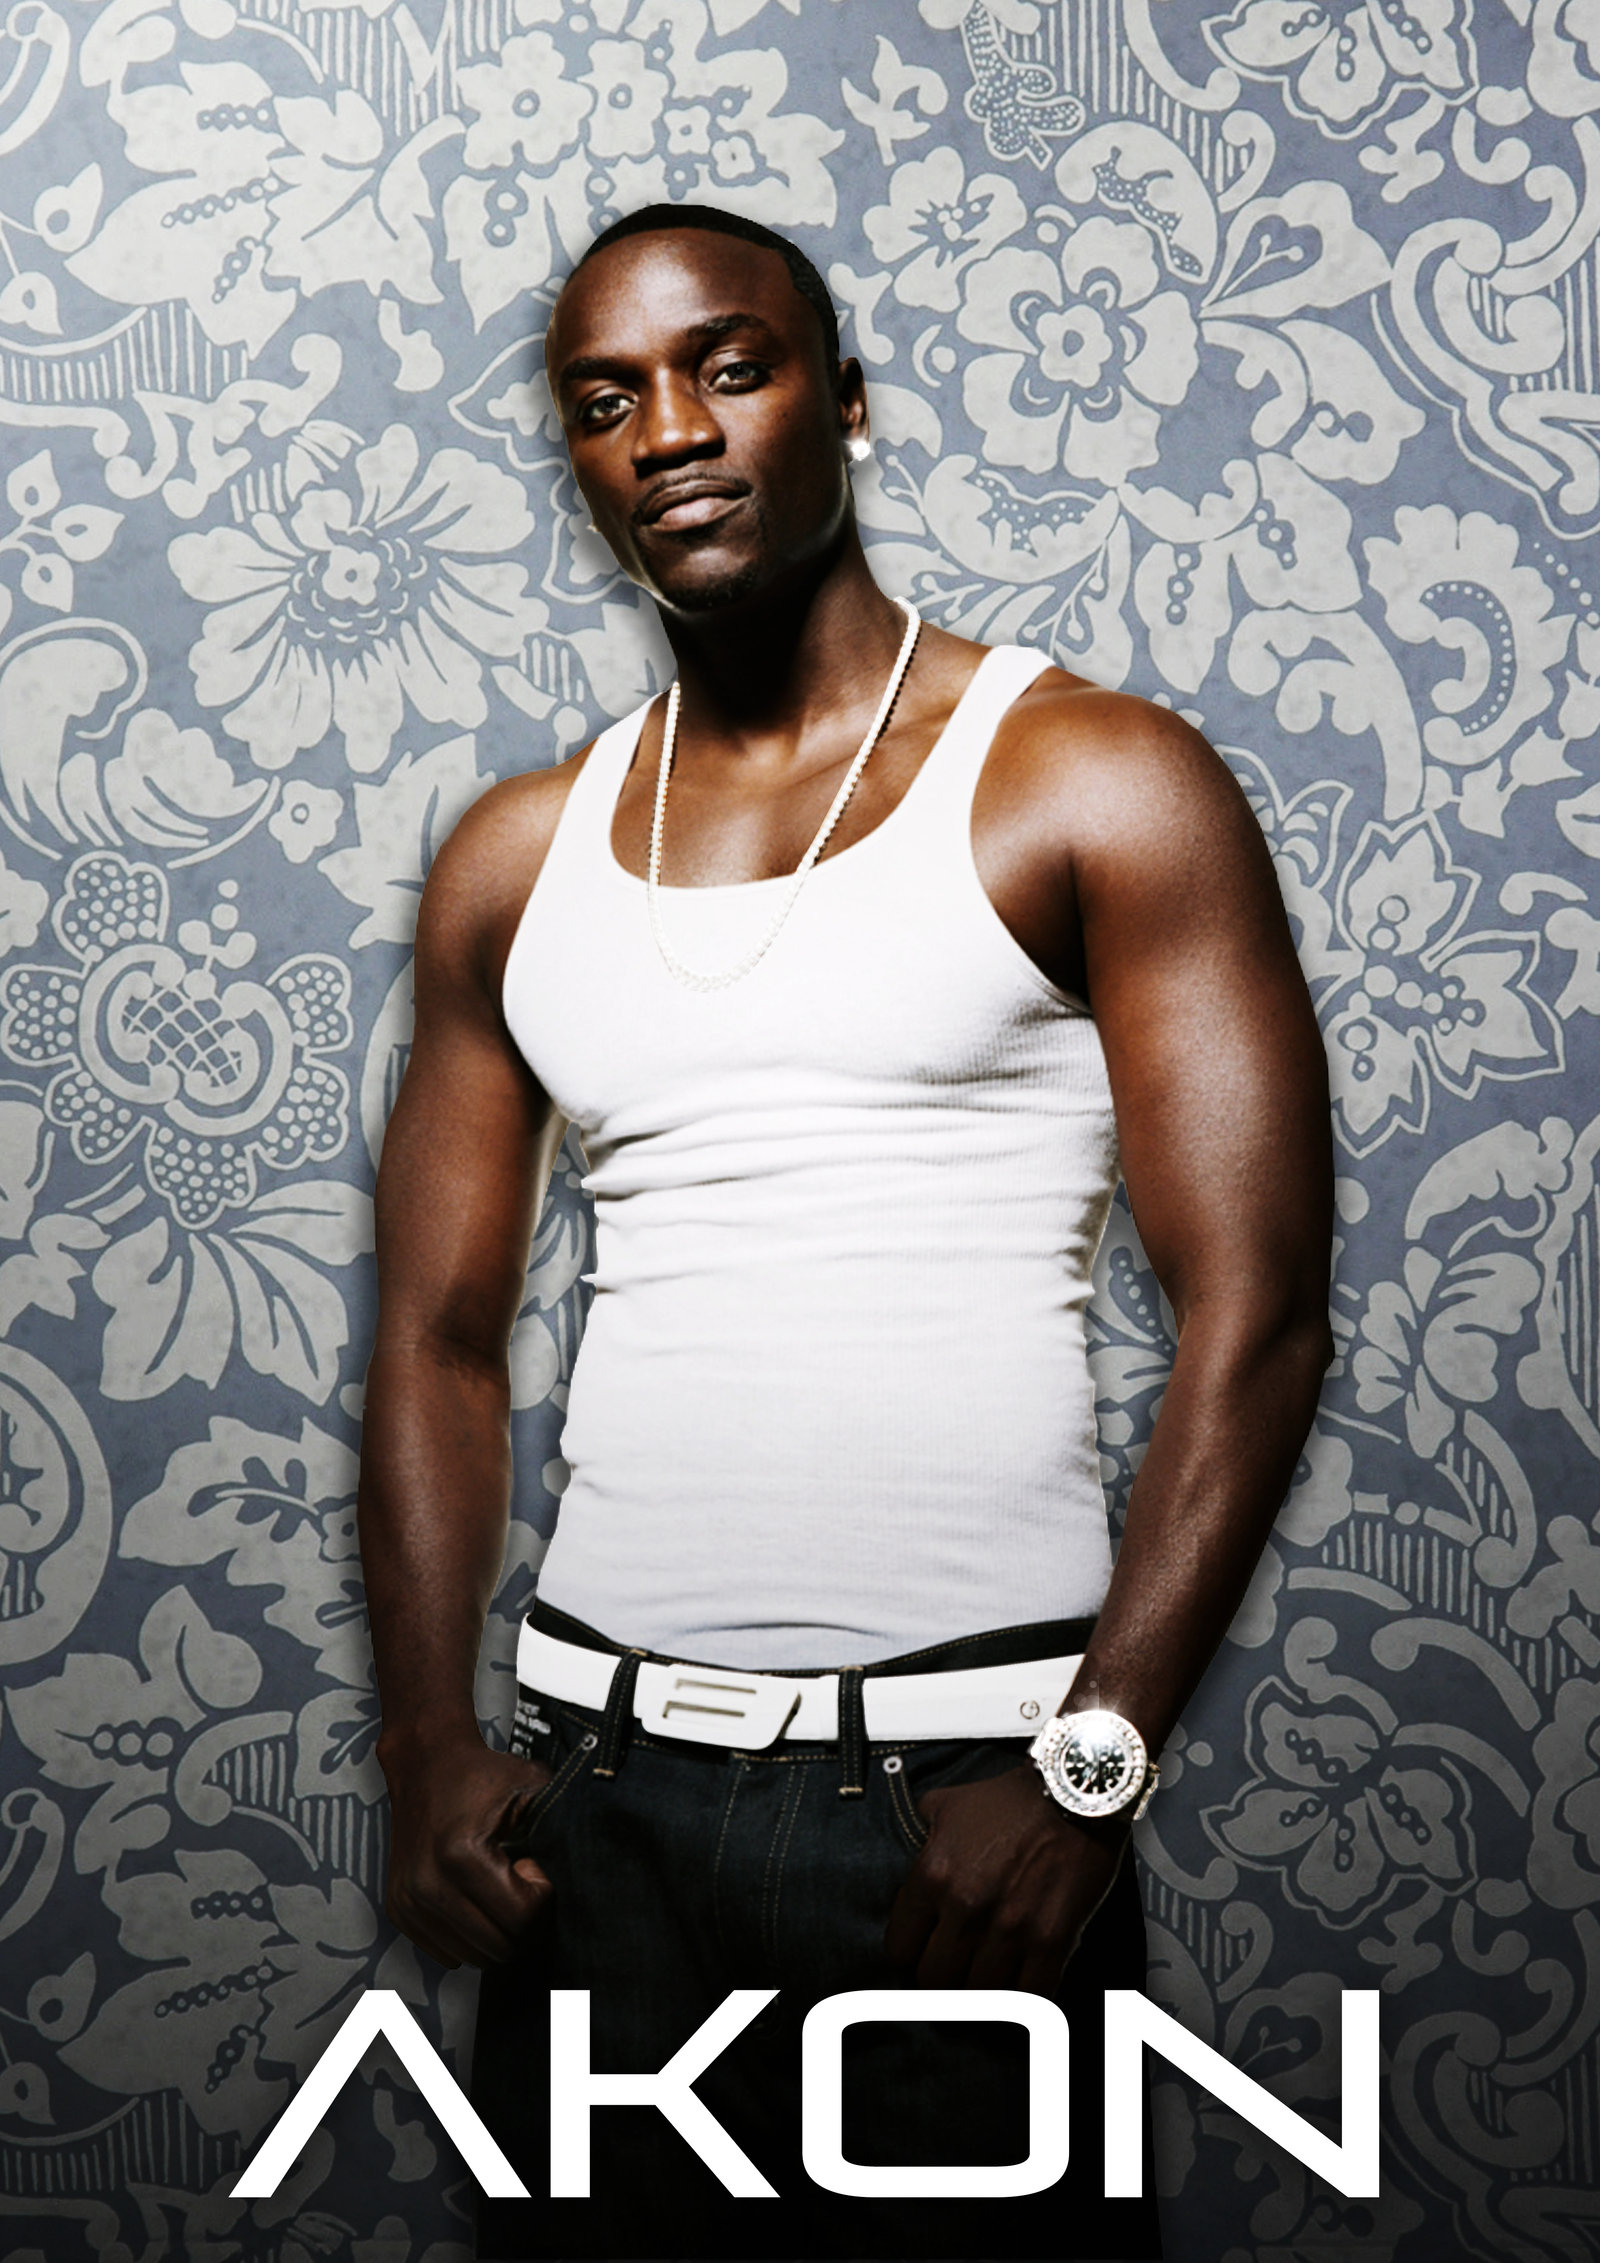 71+] Akon Wallpaper on WallpaperSafari